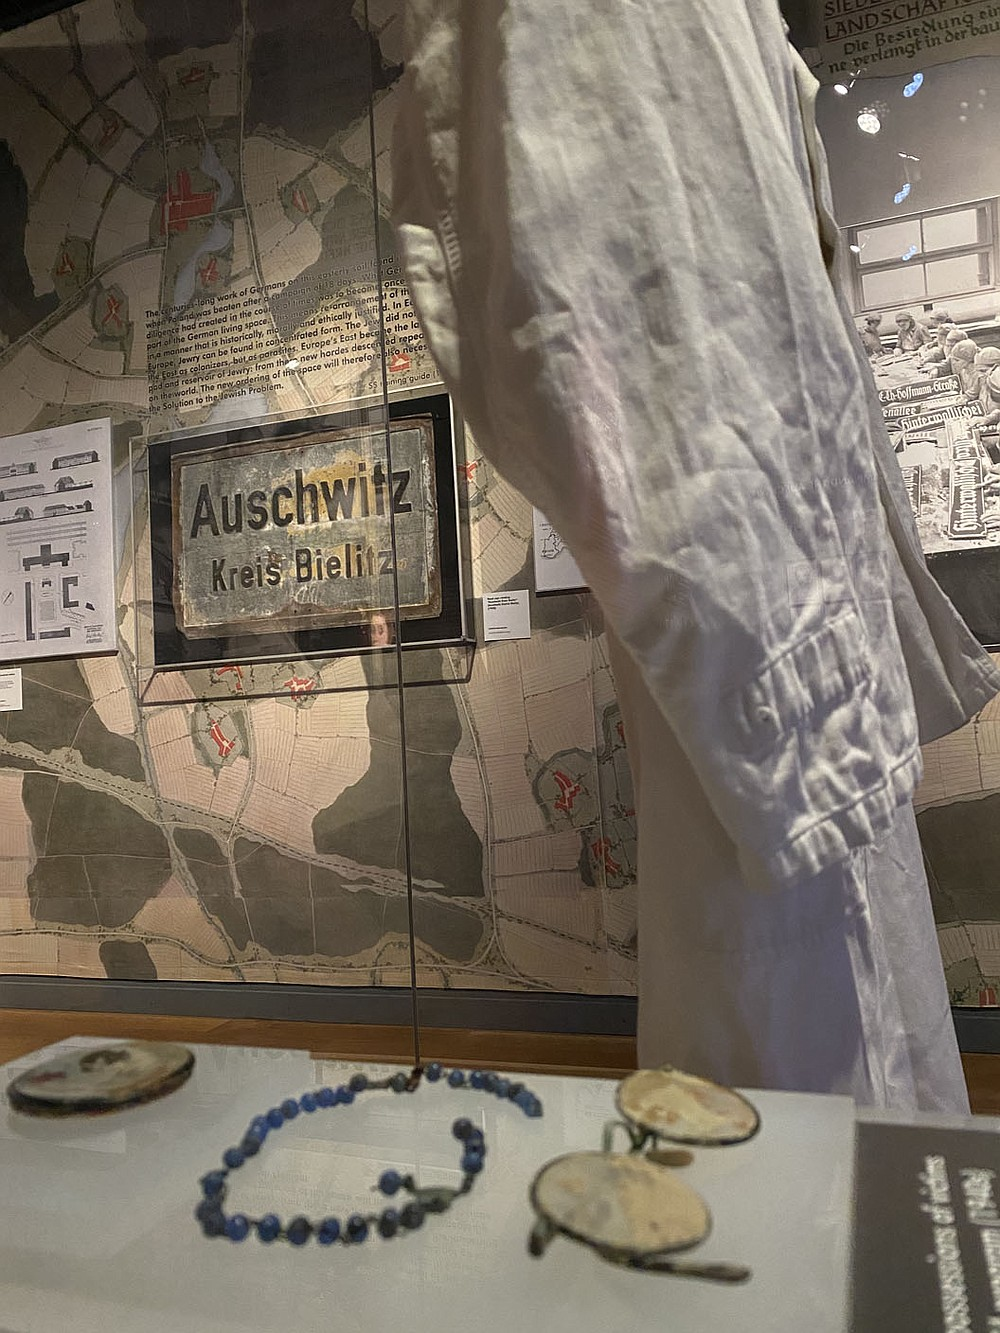 After the German attack on Poland in September 1939, the town of Oświęcim was within the territory annexed directly into the Third Reich. The name of the town was turned into Auschwitz.  (Pawel Sawicki, Auschwitz Memorial)